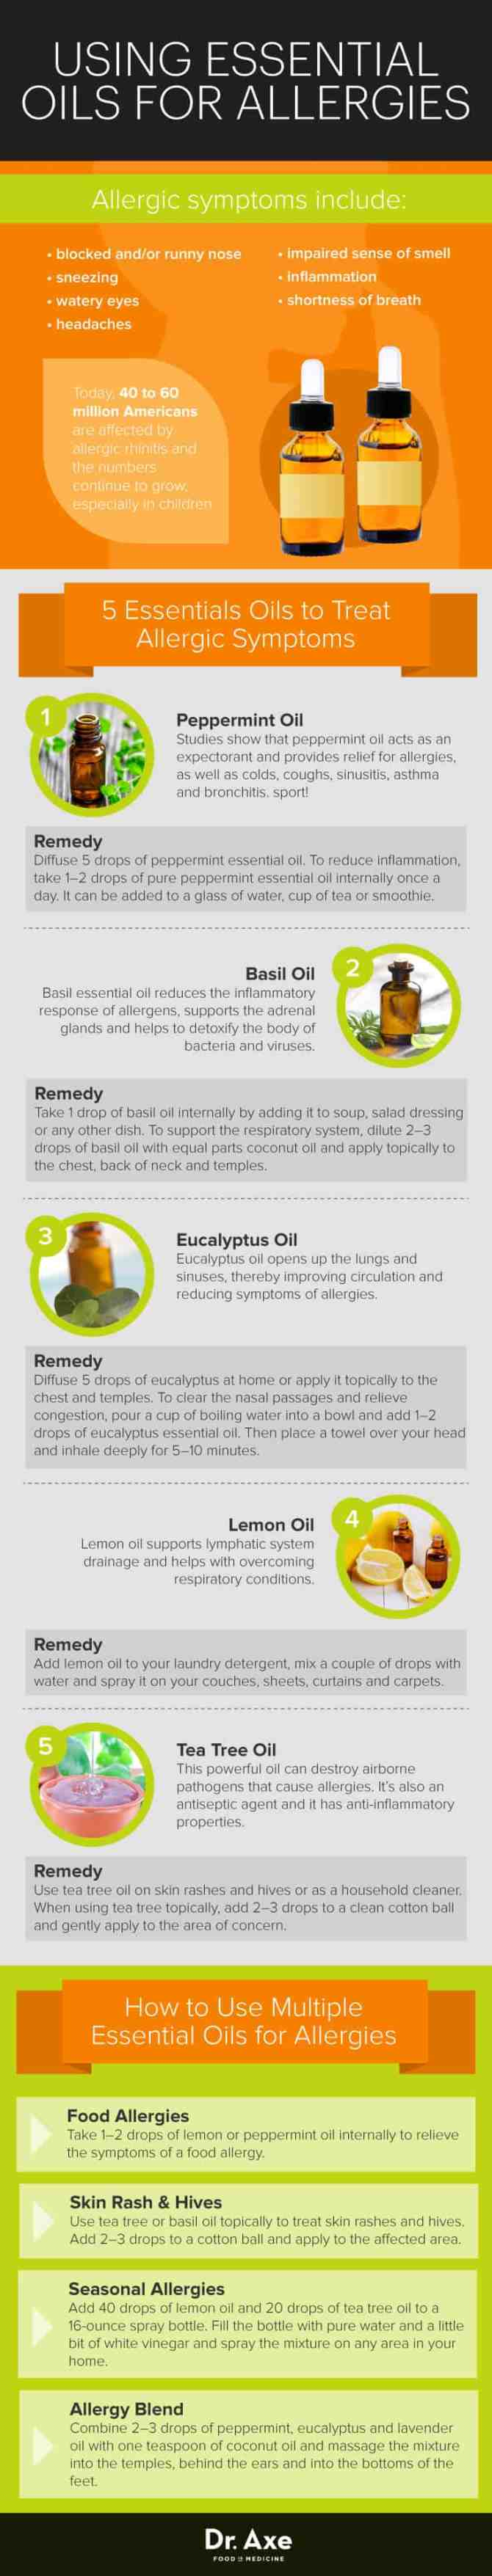 Best essential oils for allergies - Dr. Axe